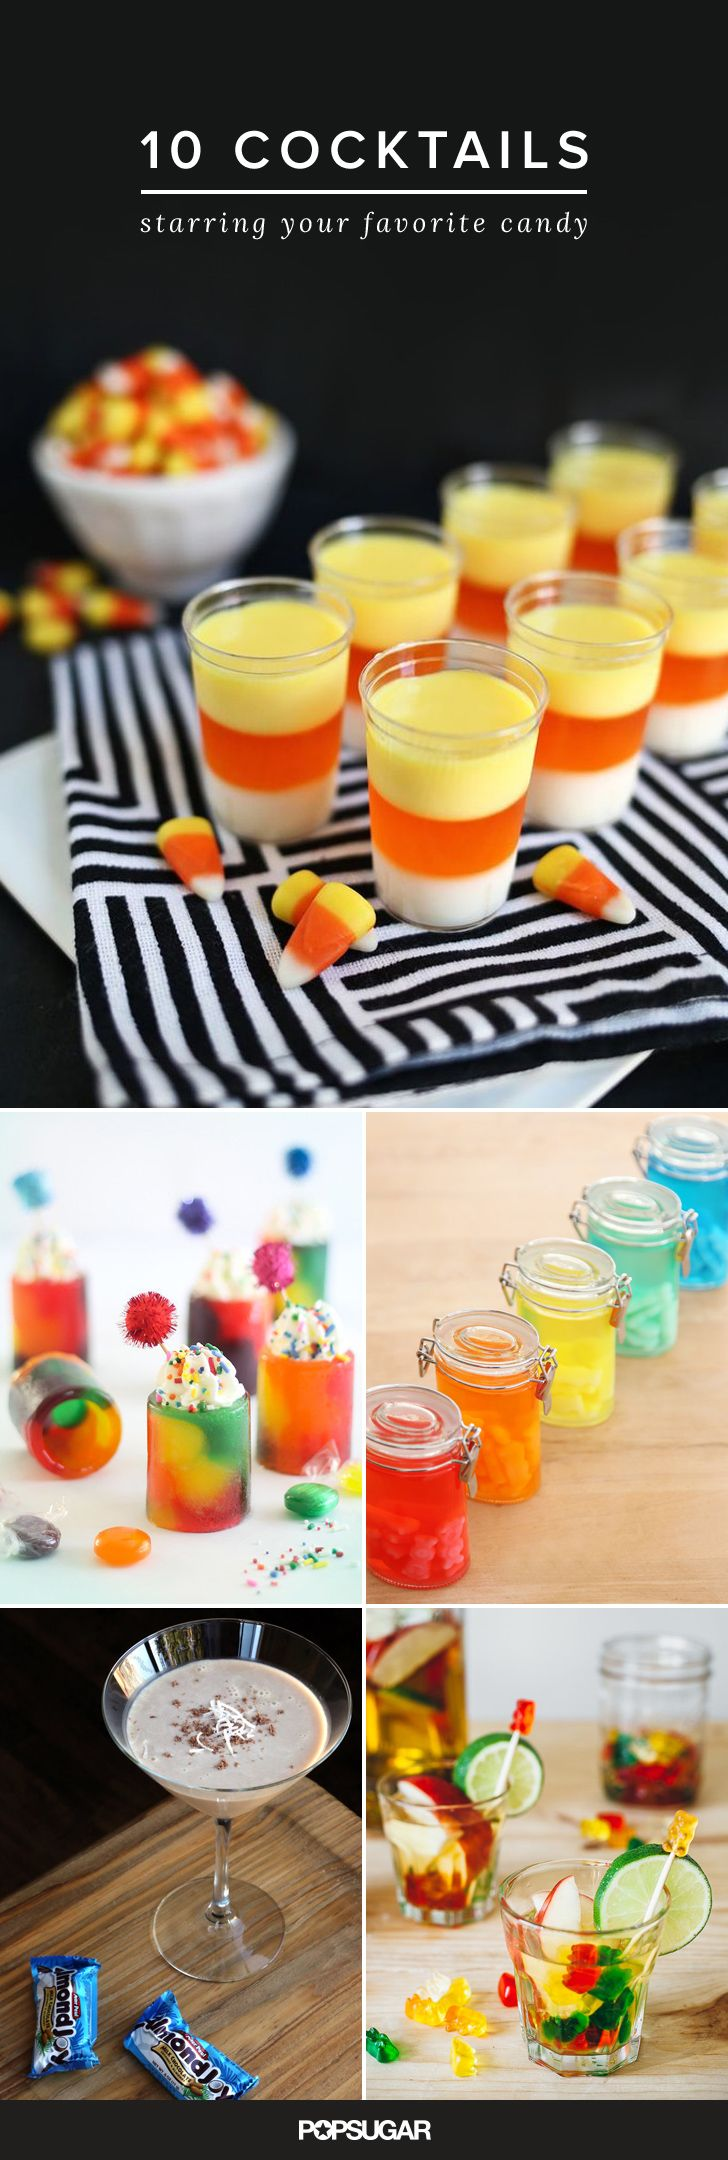 Candy and booze. Two of life's simple pleasures. Combine them and you get a pretty sweet beverage. For a Halloween party, go with an alcoholic twist on candy corn. Or taste the rainbow in the form of Skittles-infused vodka shots. Here are 10 options to get you started.